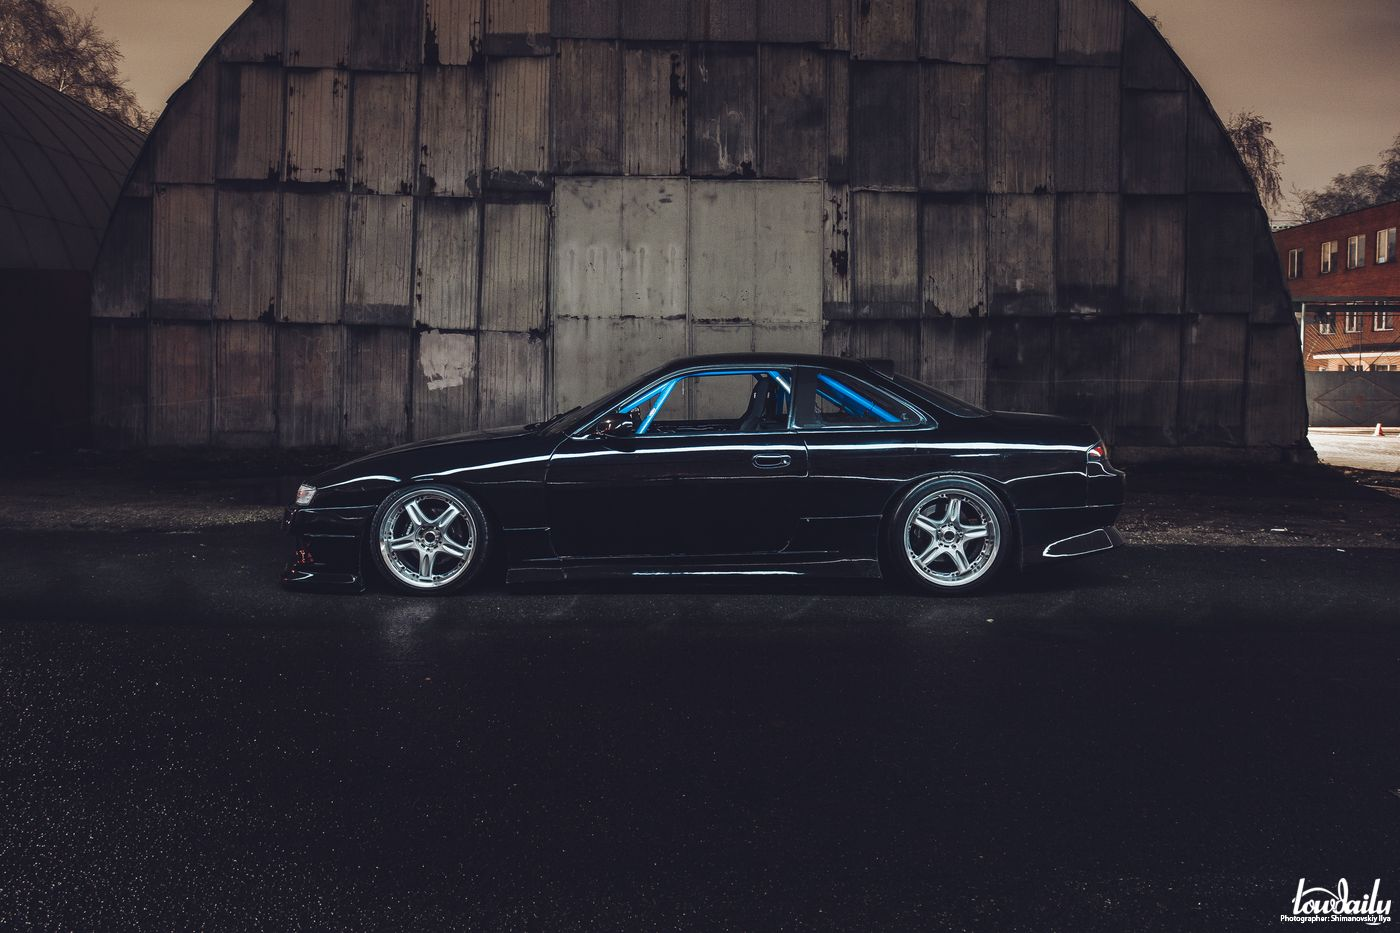 _30a5300nissan_Lowdaily